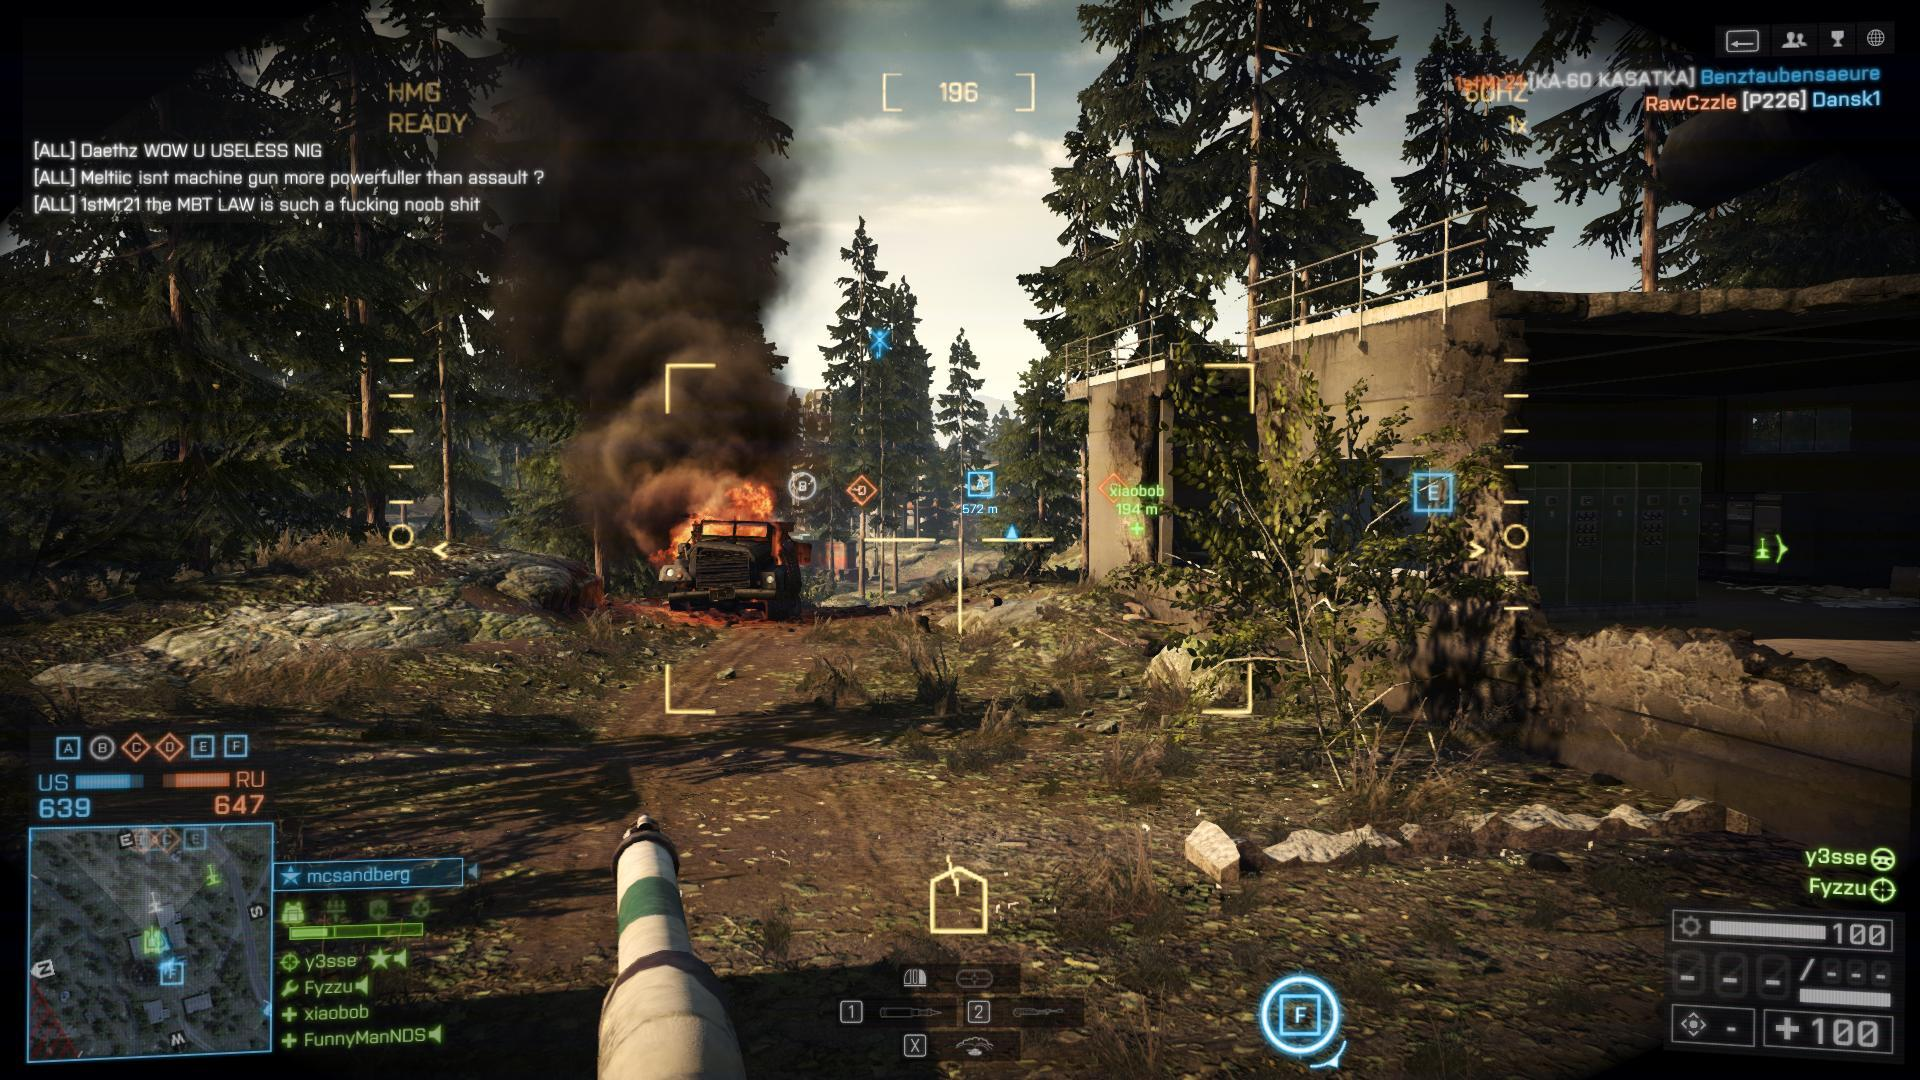 battlefield 4 for pc free download full game